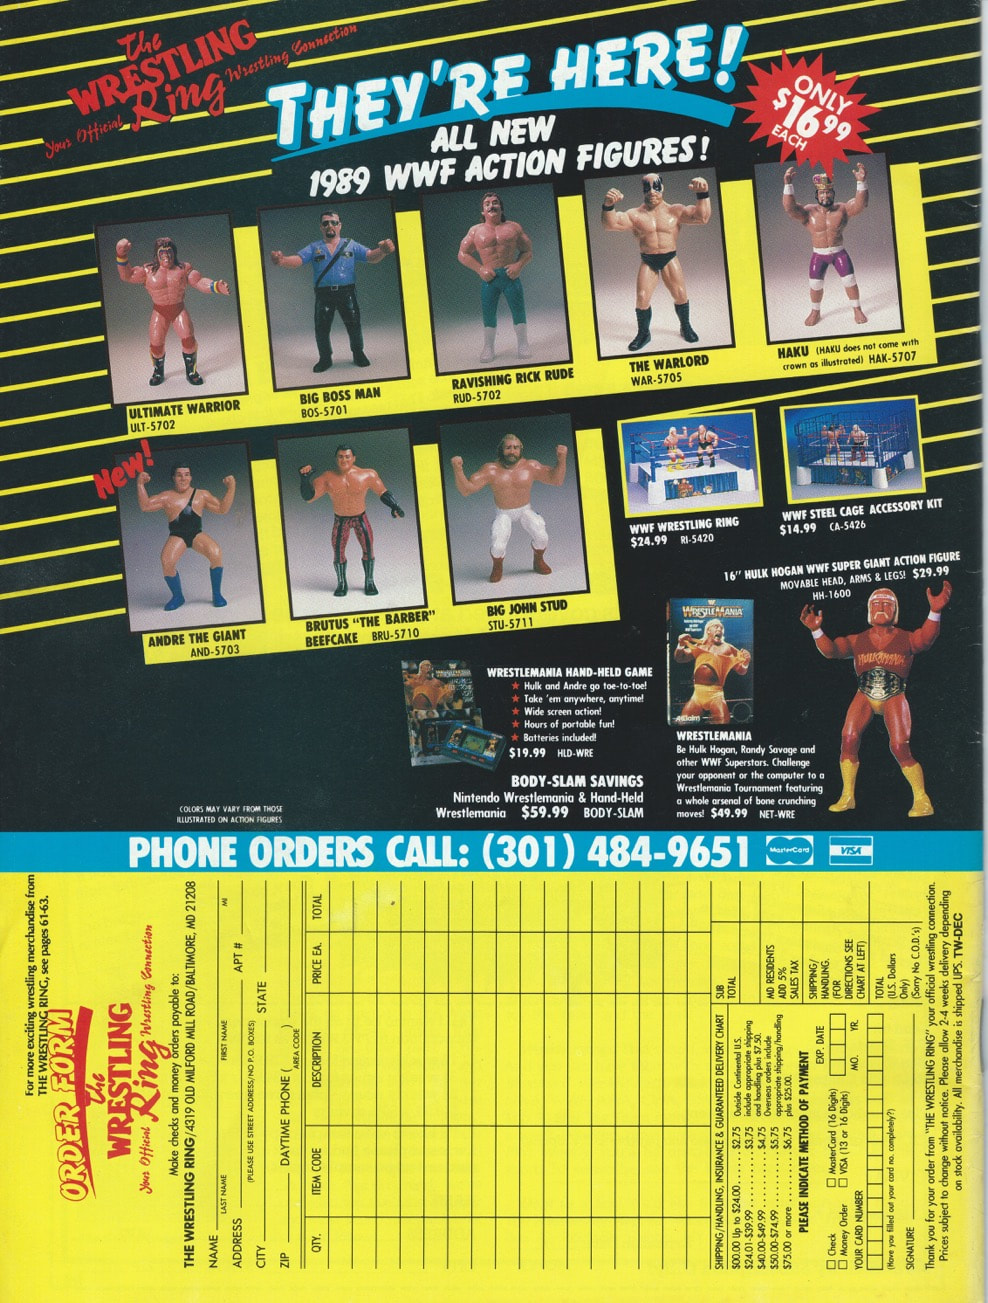 My VINTAGE Action Figure Collection: Gabara, The Mummy's Curse & More! - Page 4 Ljn-se10